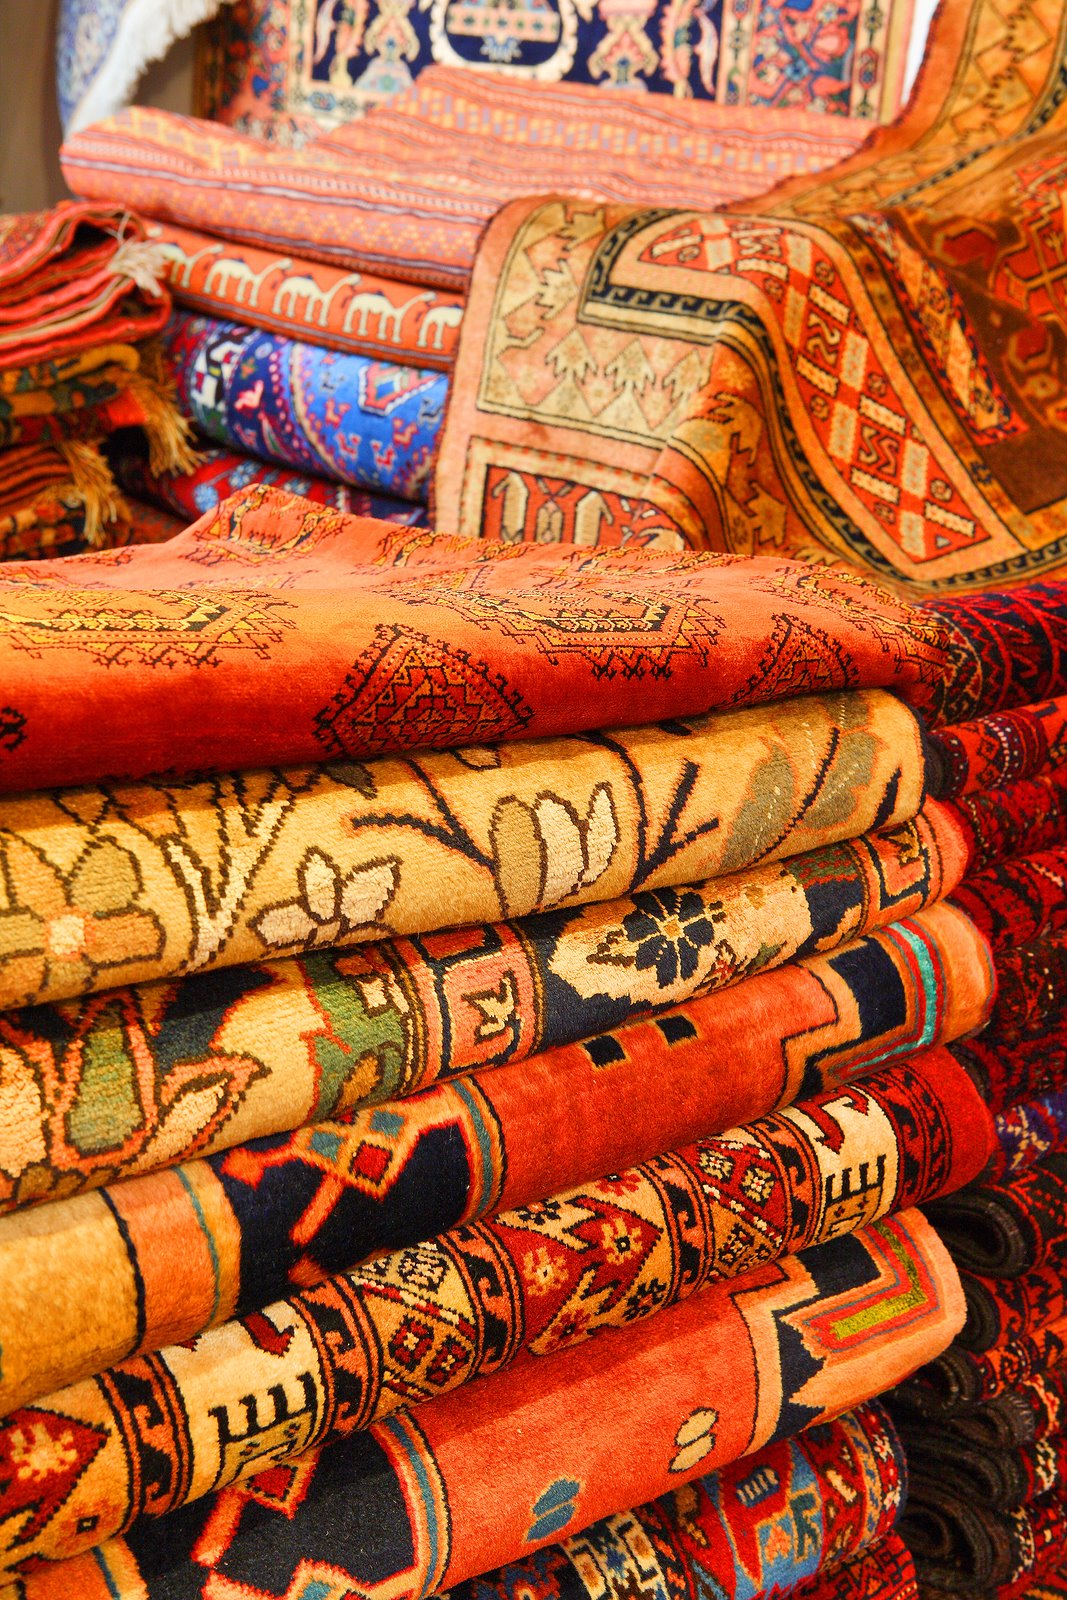 Bigstockphoto_Turkey Rug Merchant 700357